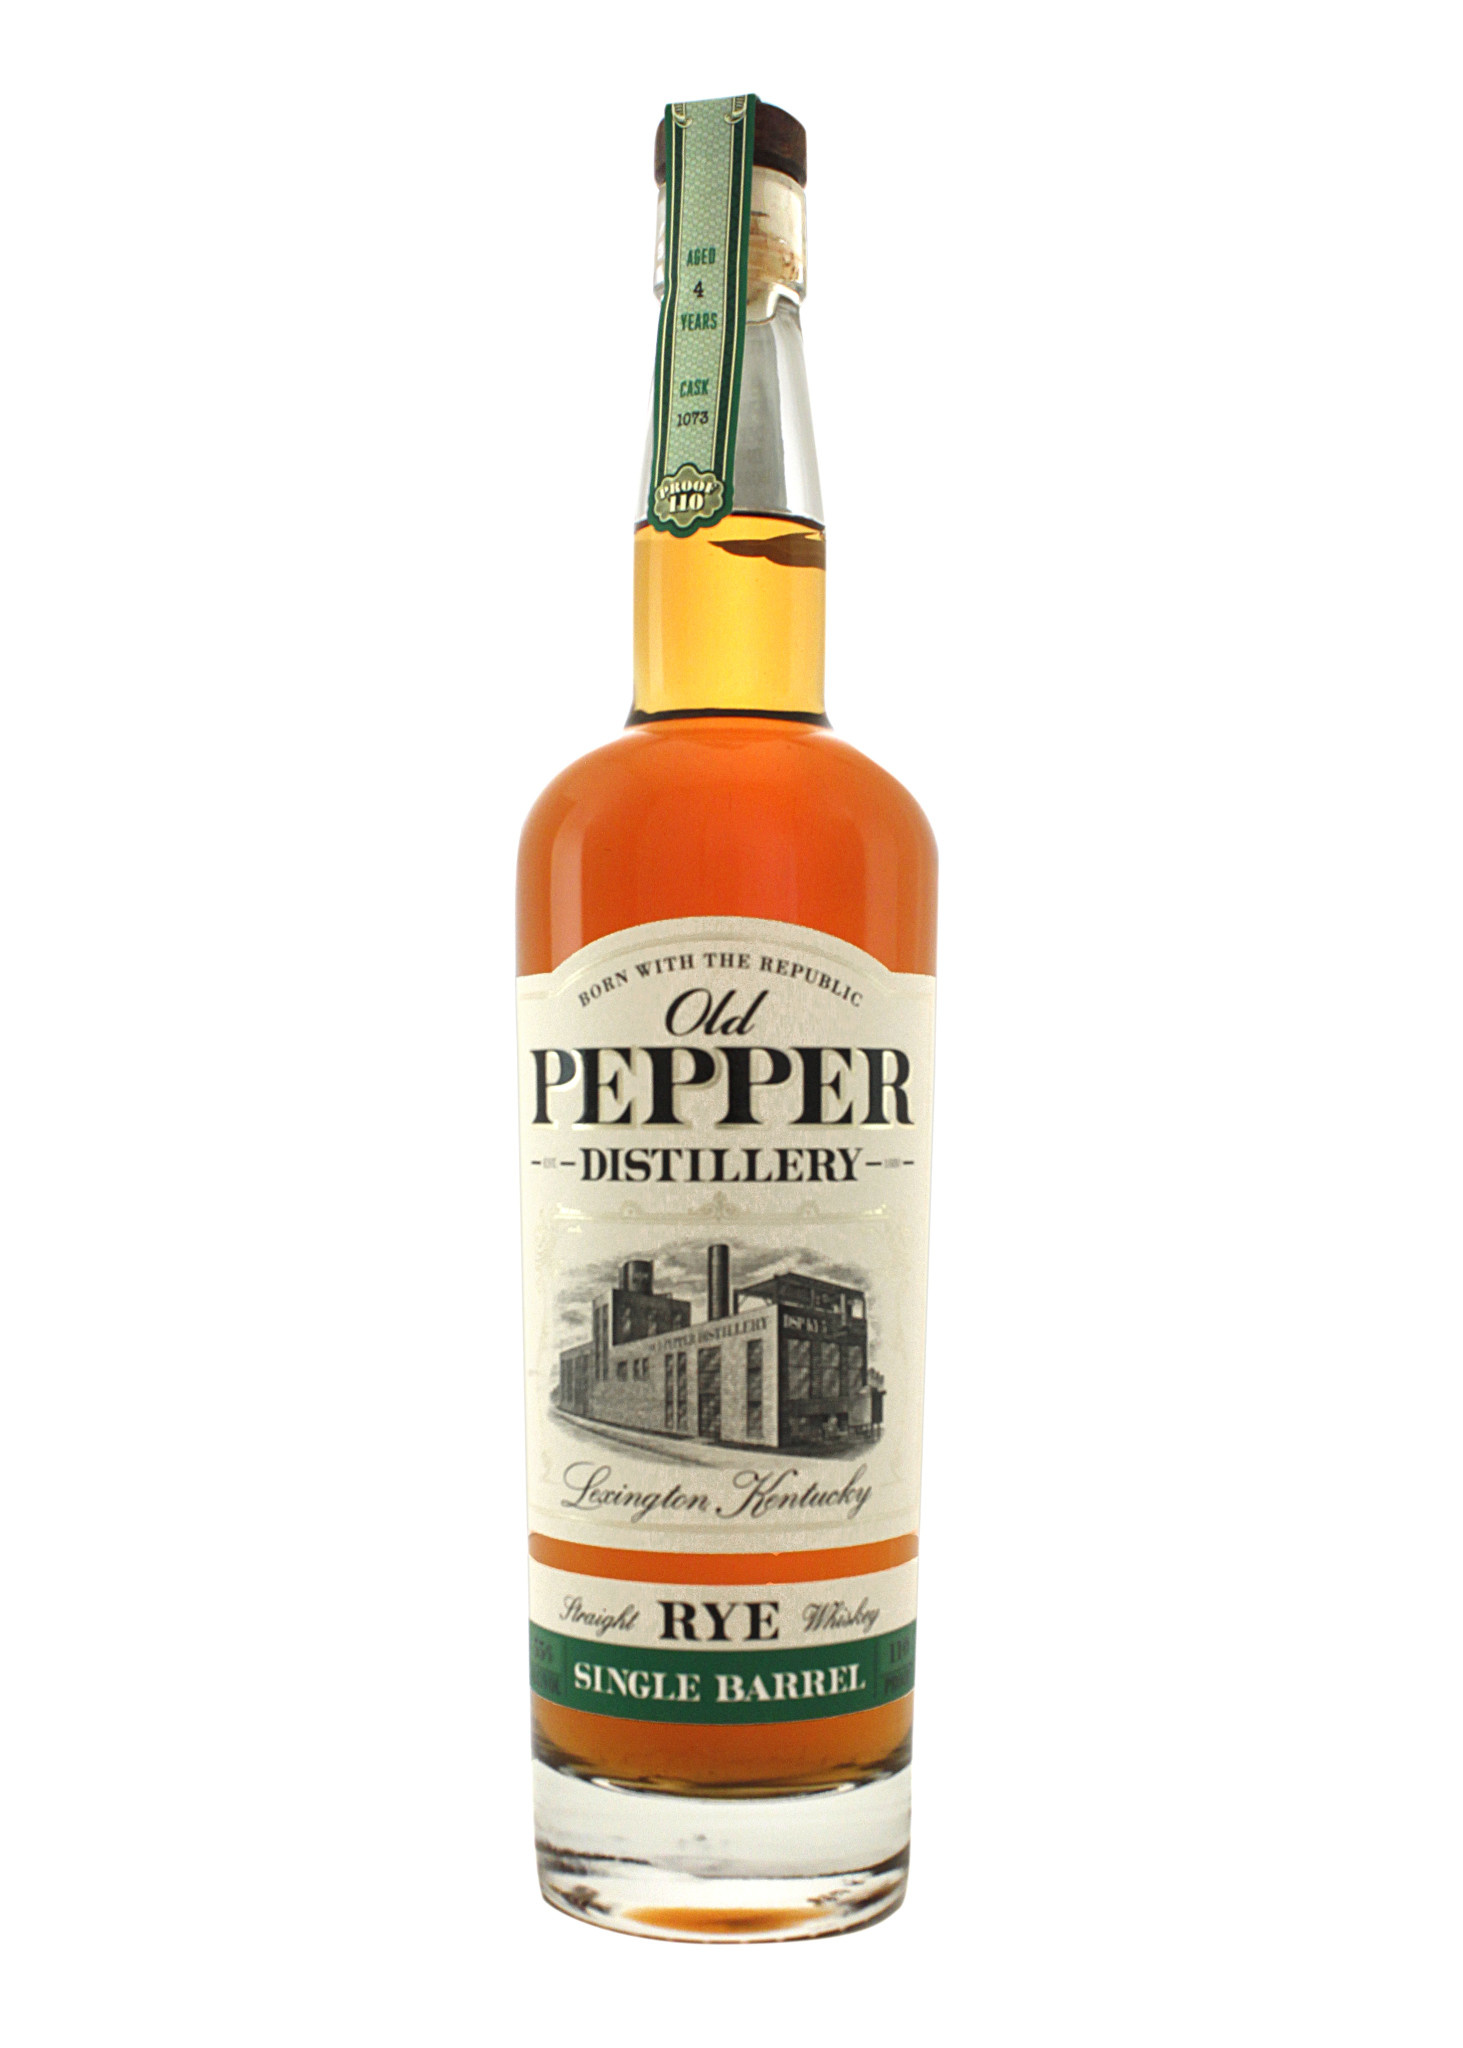 Old Pepper Single Barrel Straight Rye Whiskey